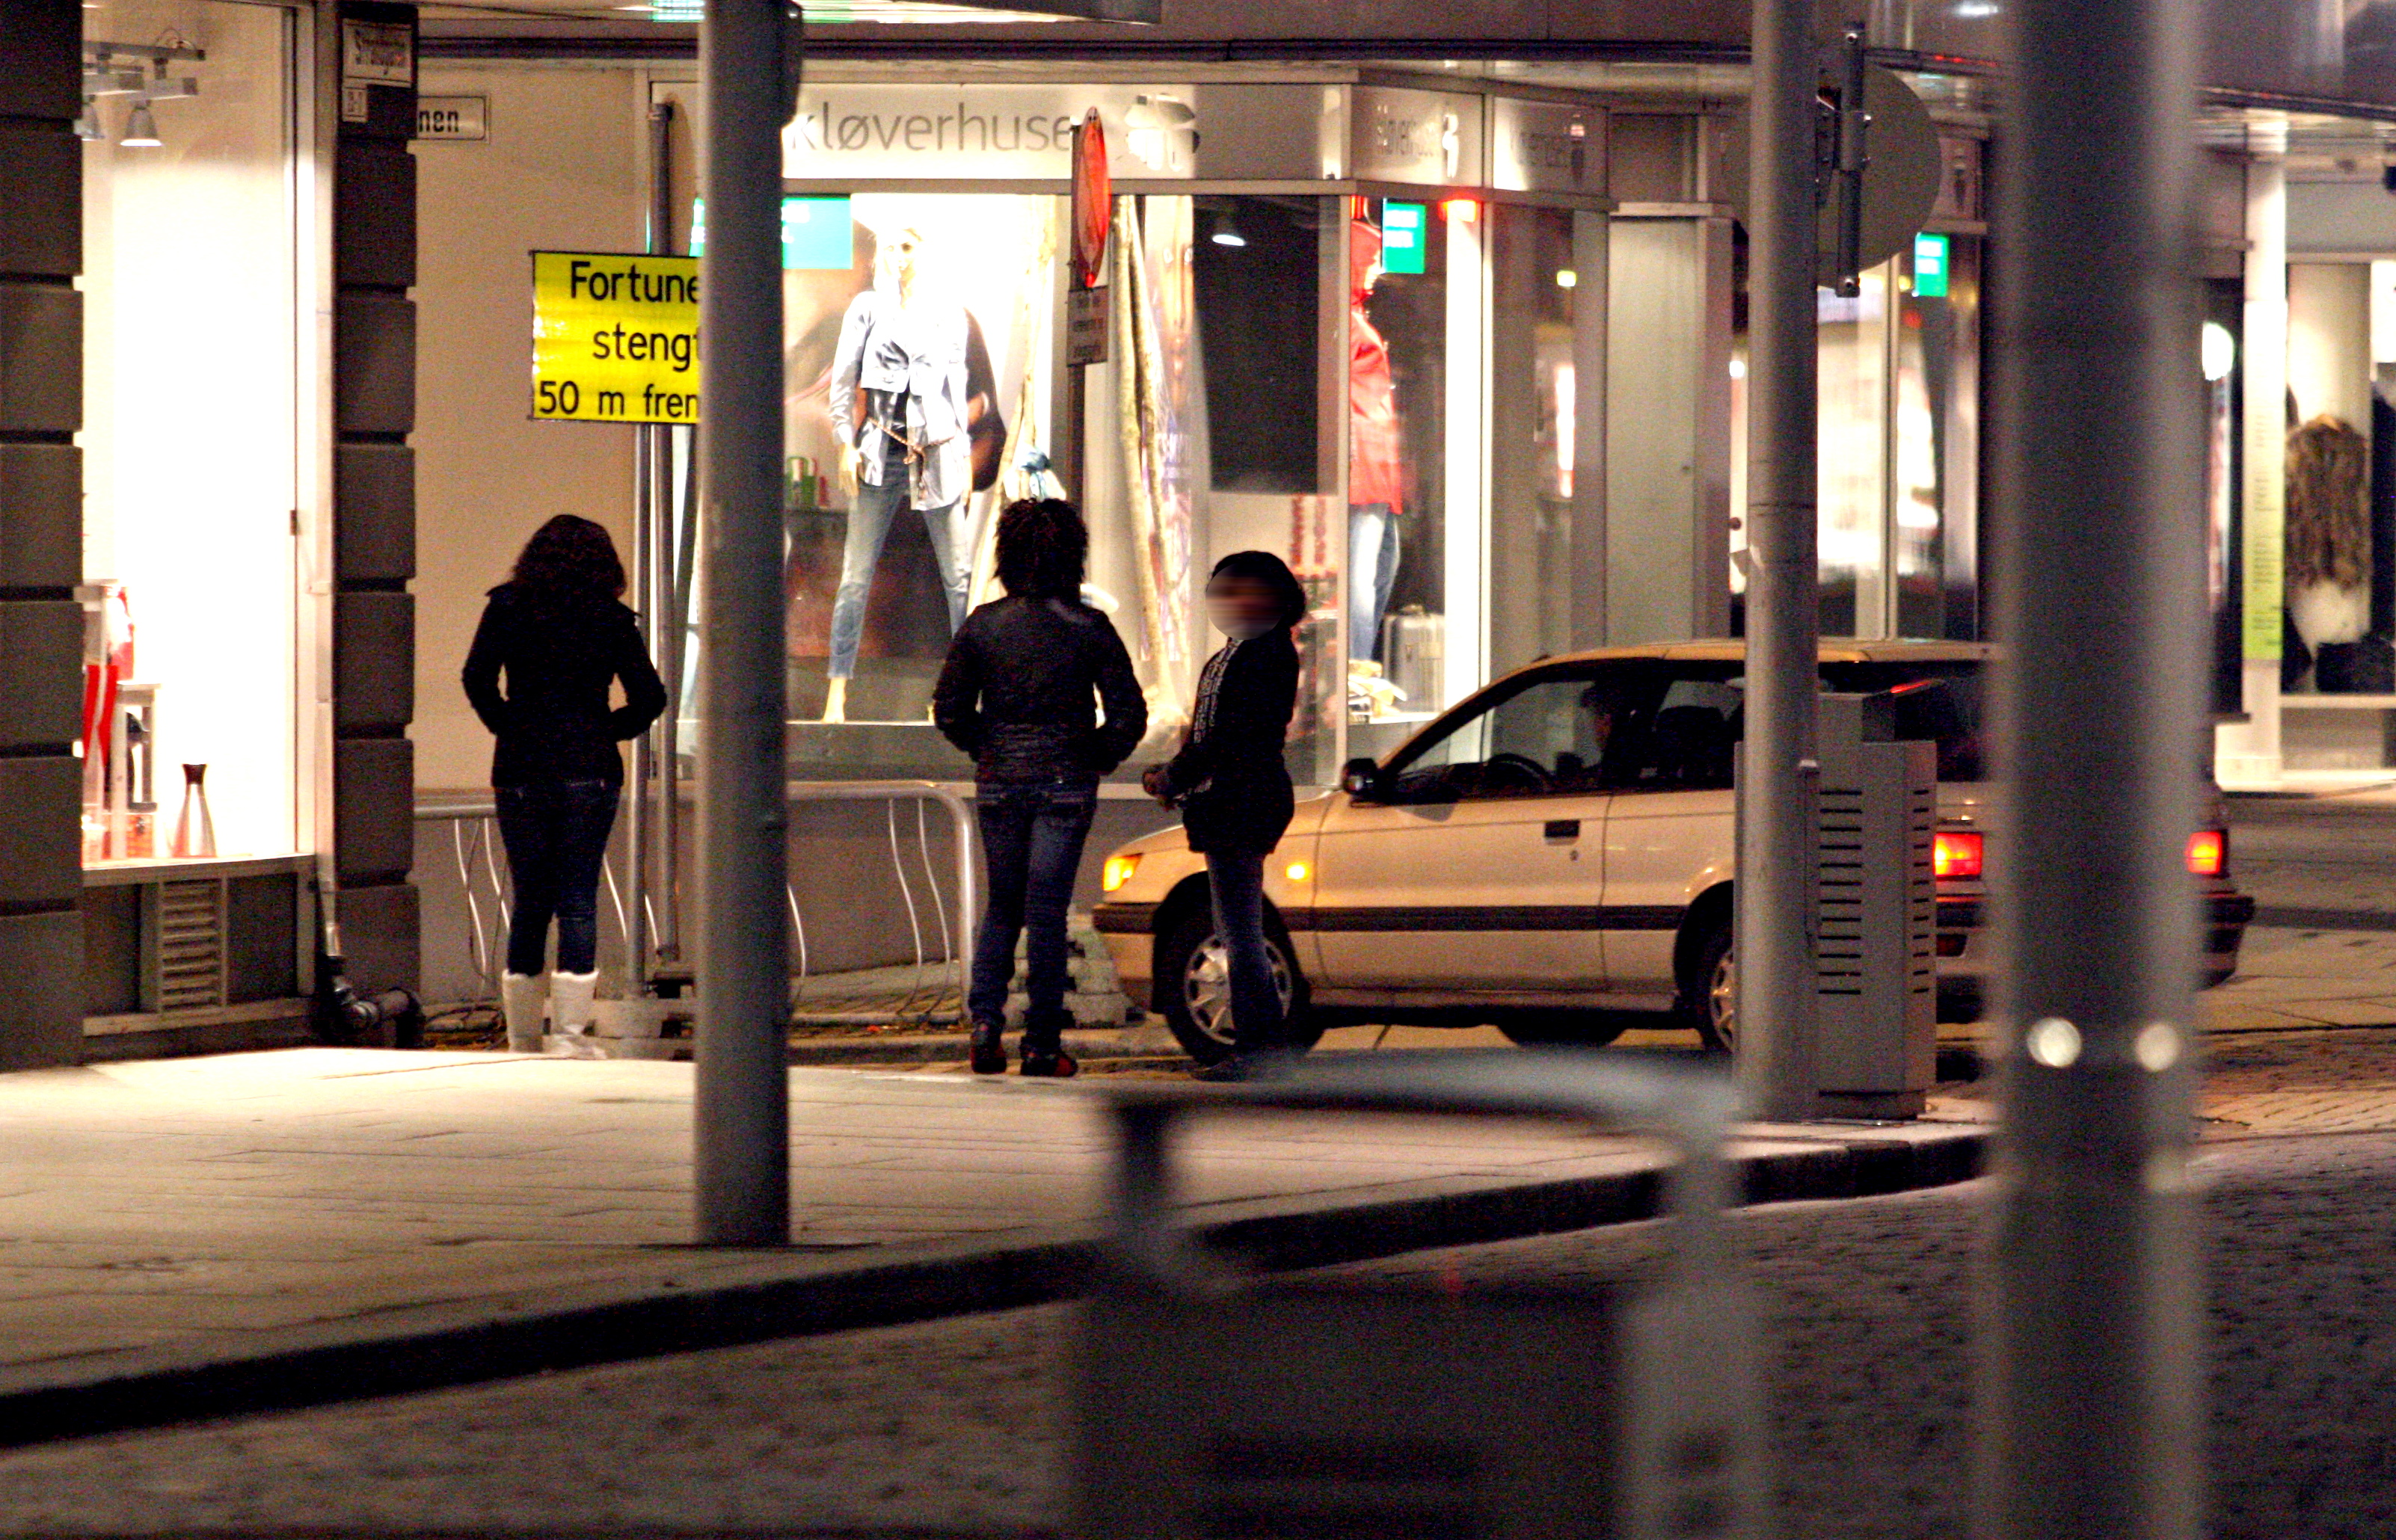 prostituerte i bergen sugardating